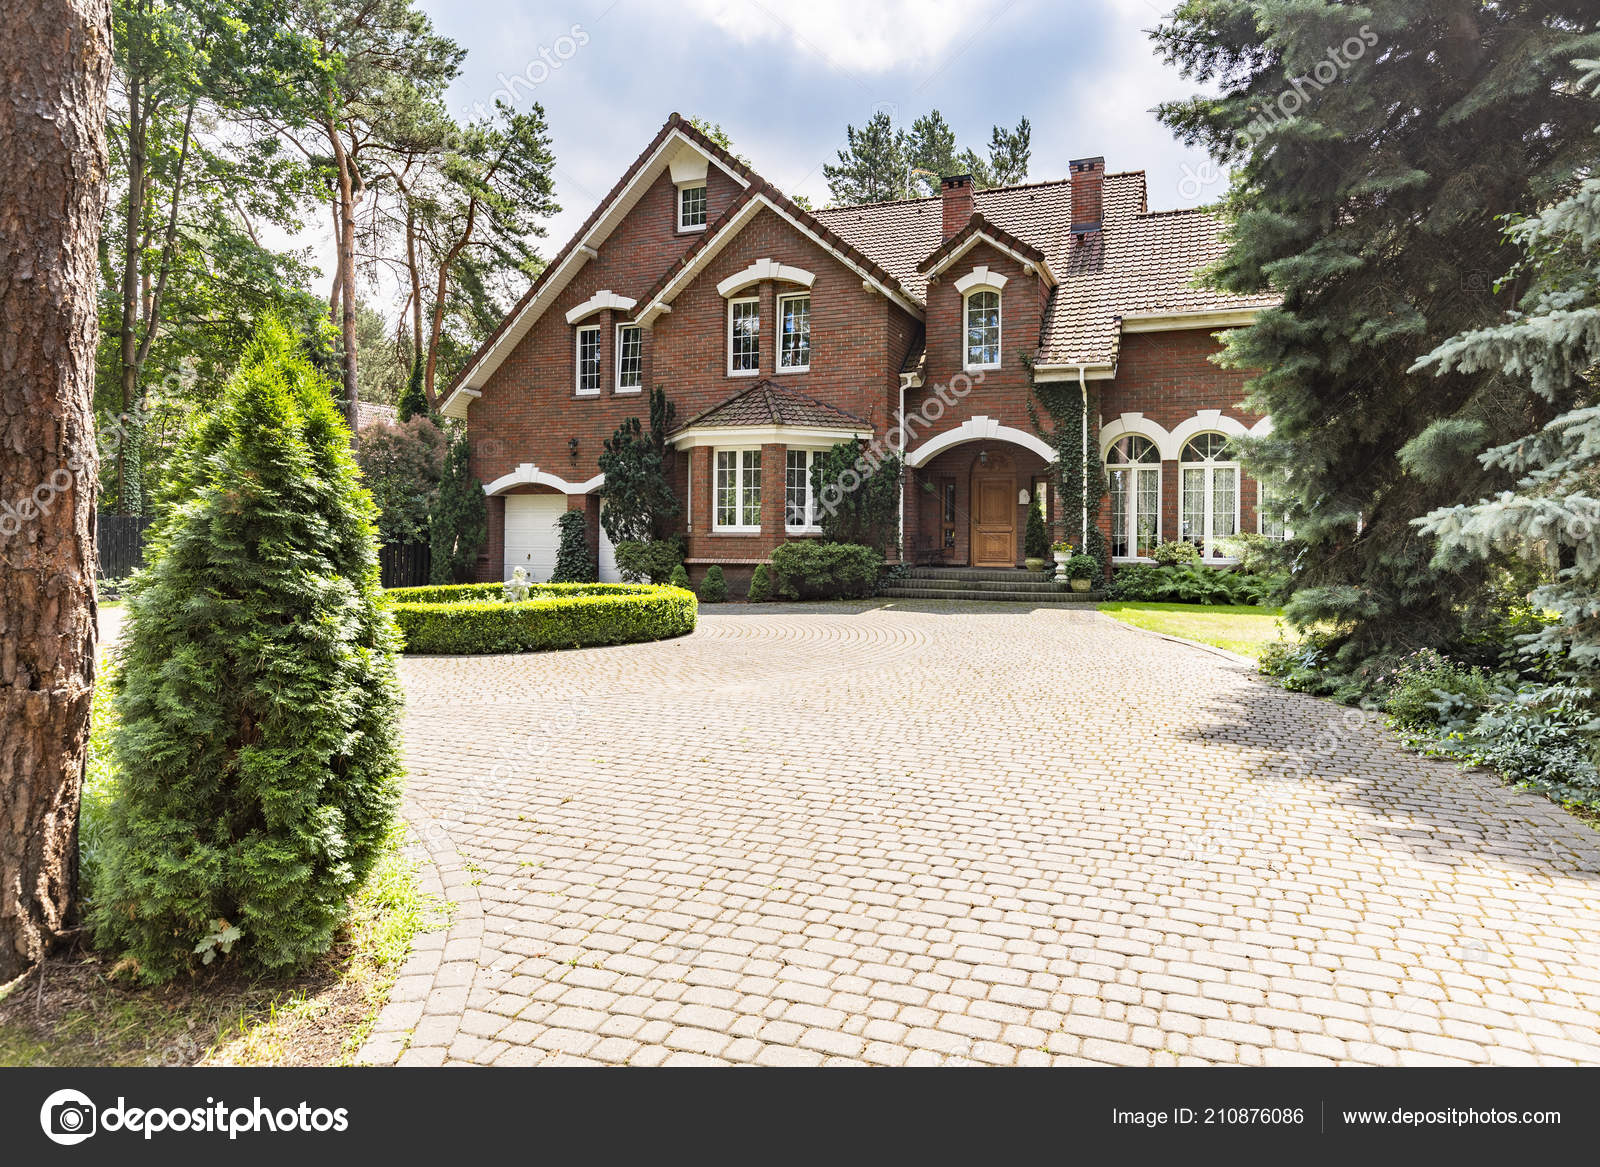 Large Cobbled Driveway Front Impressive Red Brick English Design Mansion Stock Photo C Photographee Eu 210876086